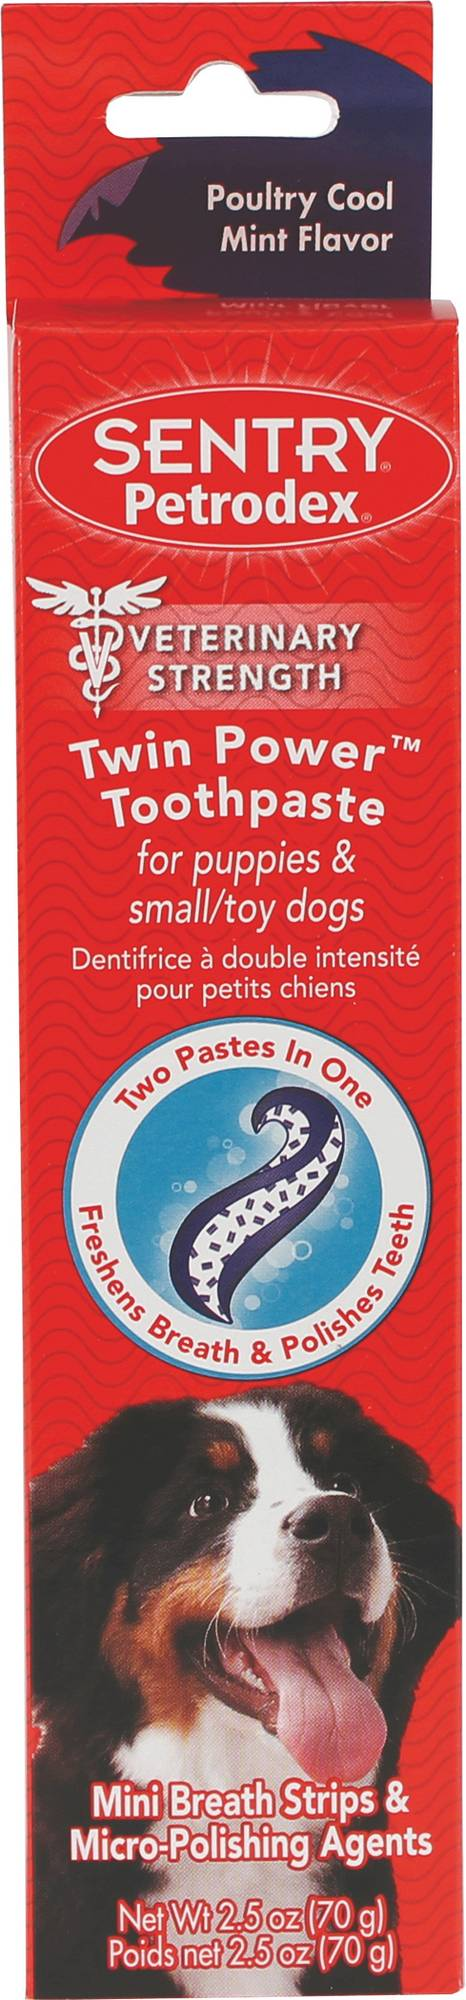 Sentry Petrodex Twin Power Toothpaste For Puppies